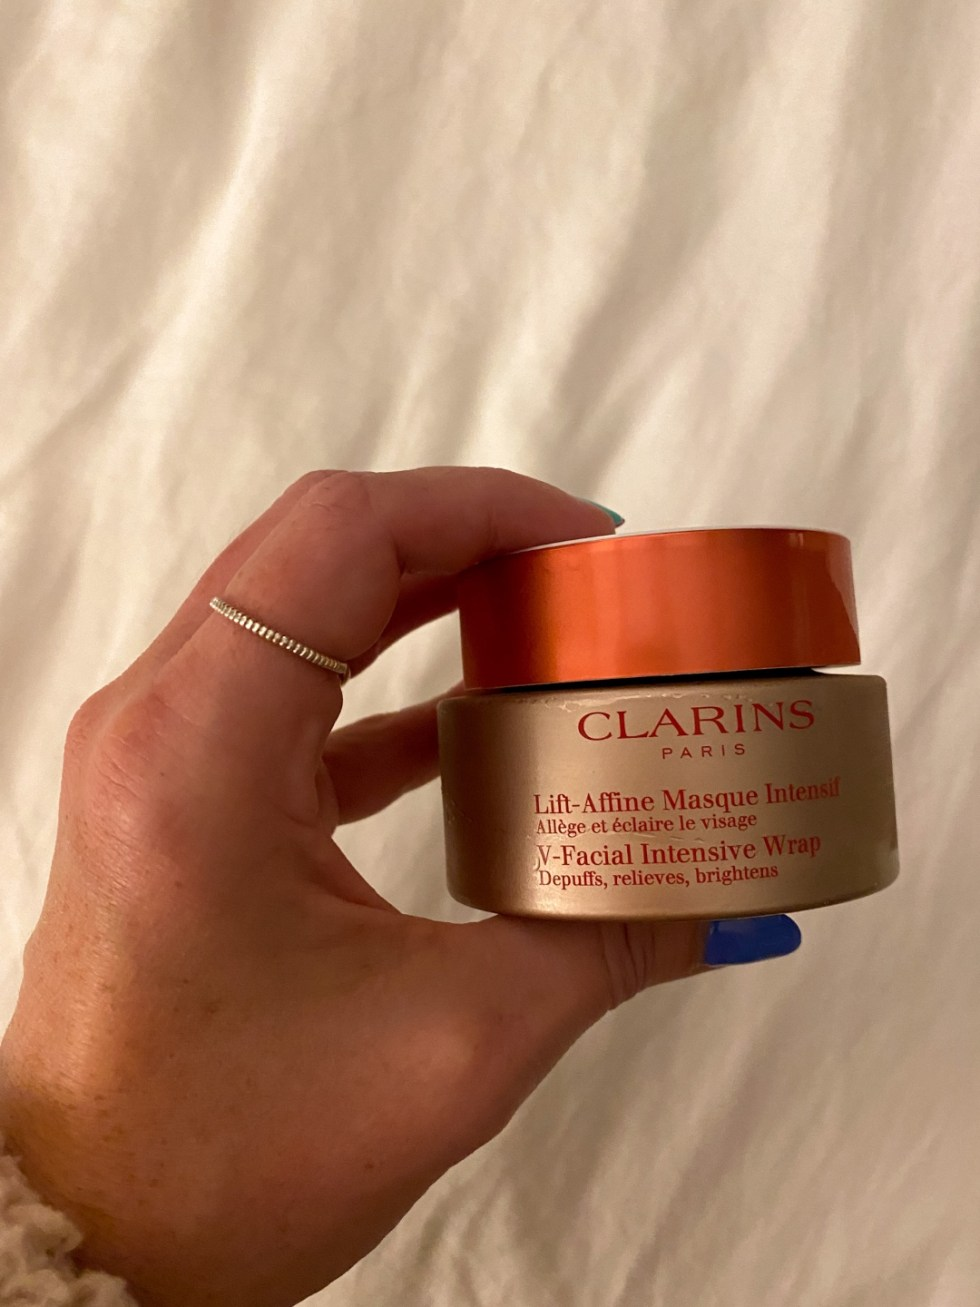 Recent Favorites: Top 10 Things I've Bought that Are Worth the Hype - I'm Fixin' To - @imfixintoblog | Recent Favorites by popular NC life and style blog, I'm Fixin' To: image of a woman holding some Clarins lift affine masque.